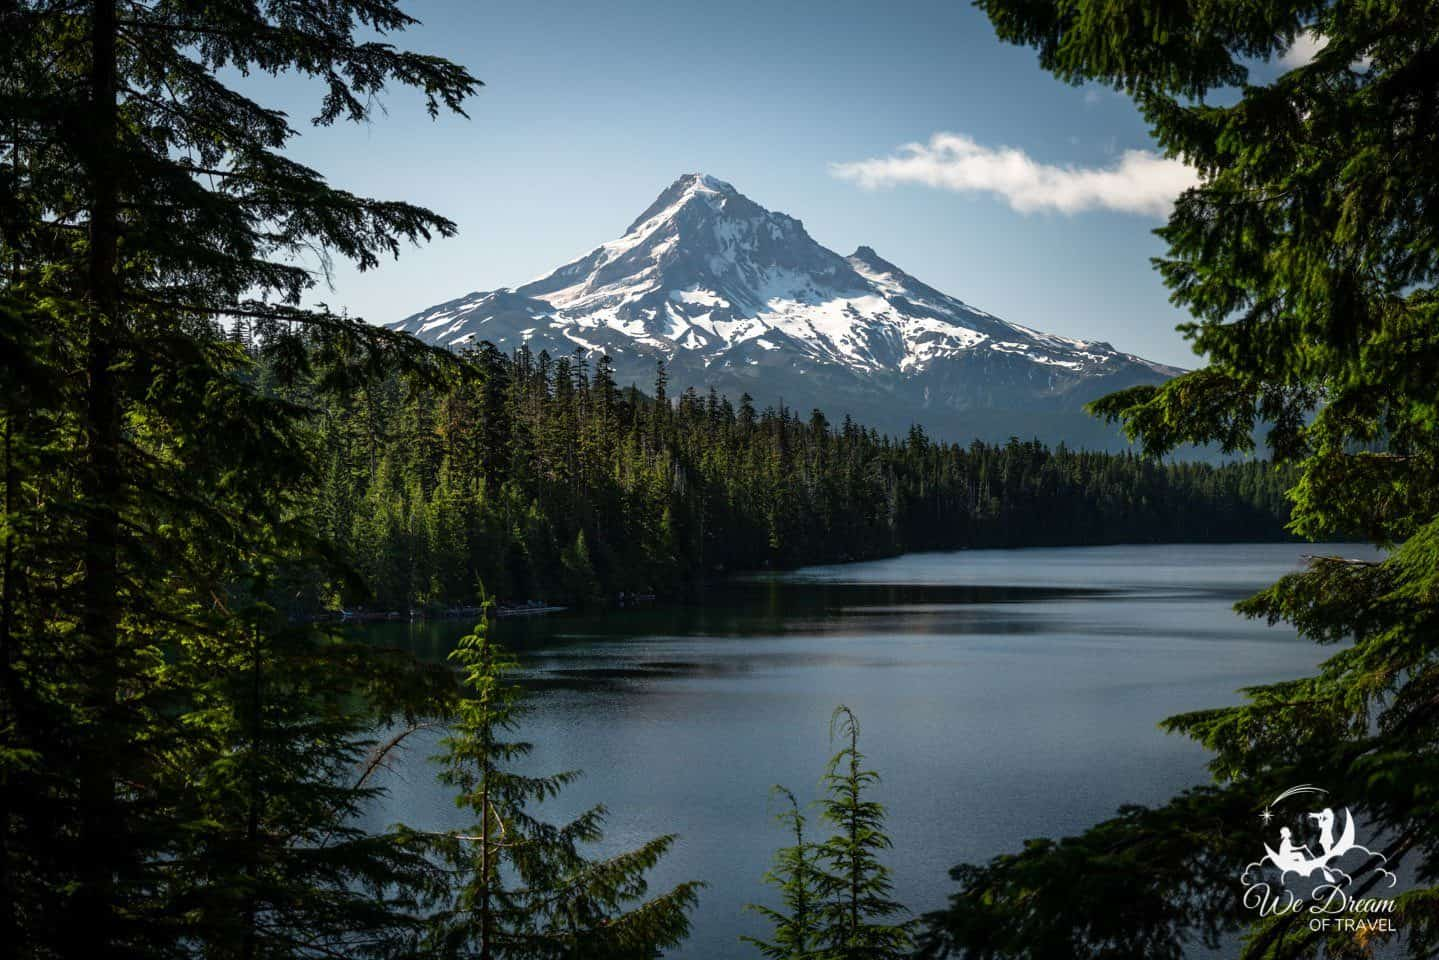 Lost Lake is a great place to visit in Oregon for unbeatable views of Mt Hood